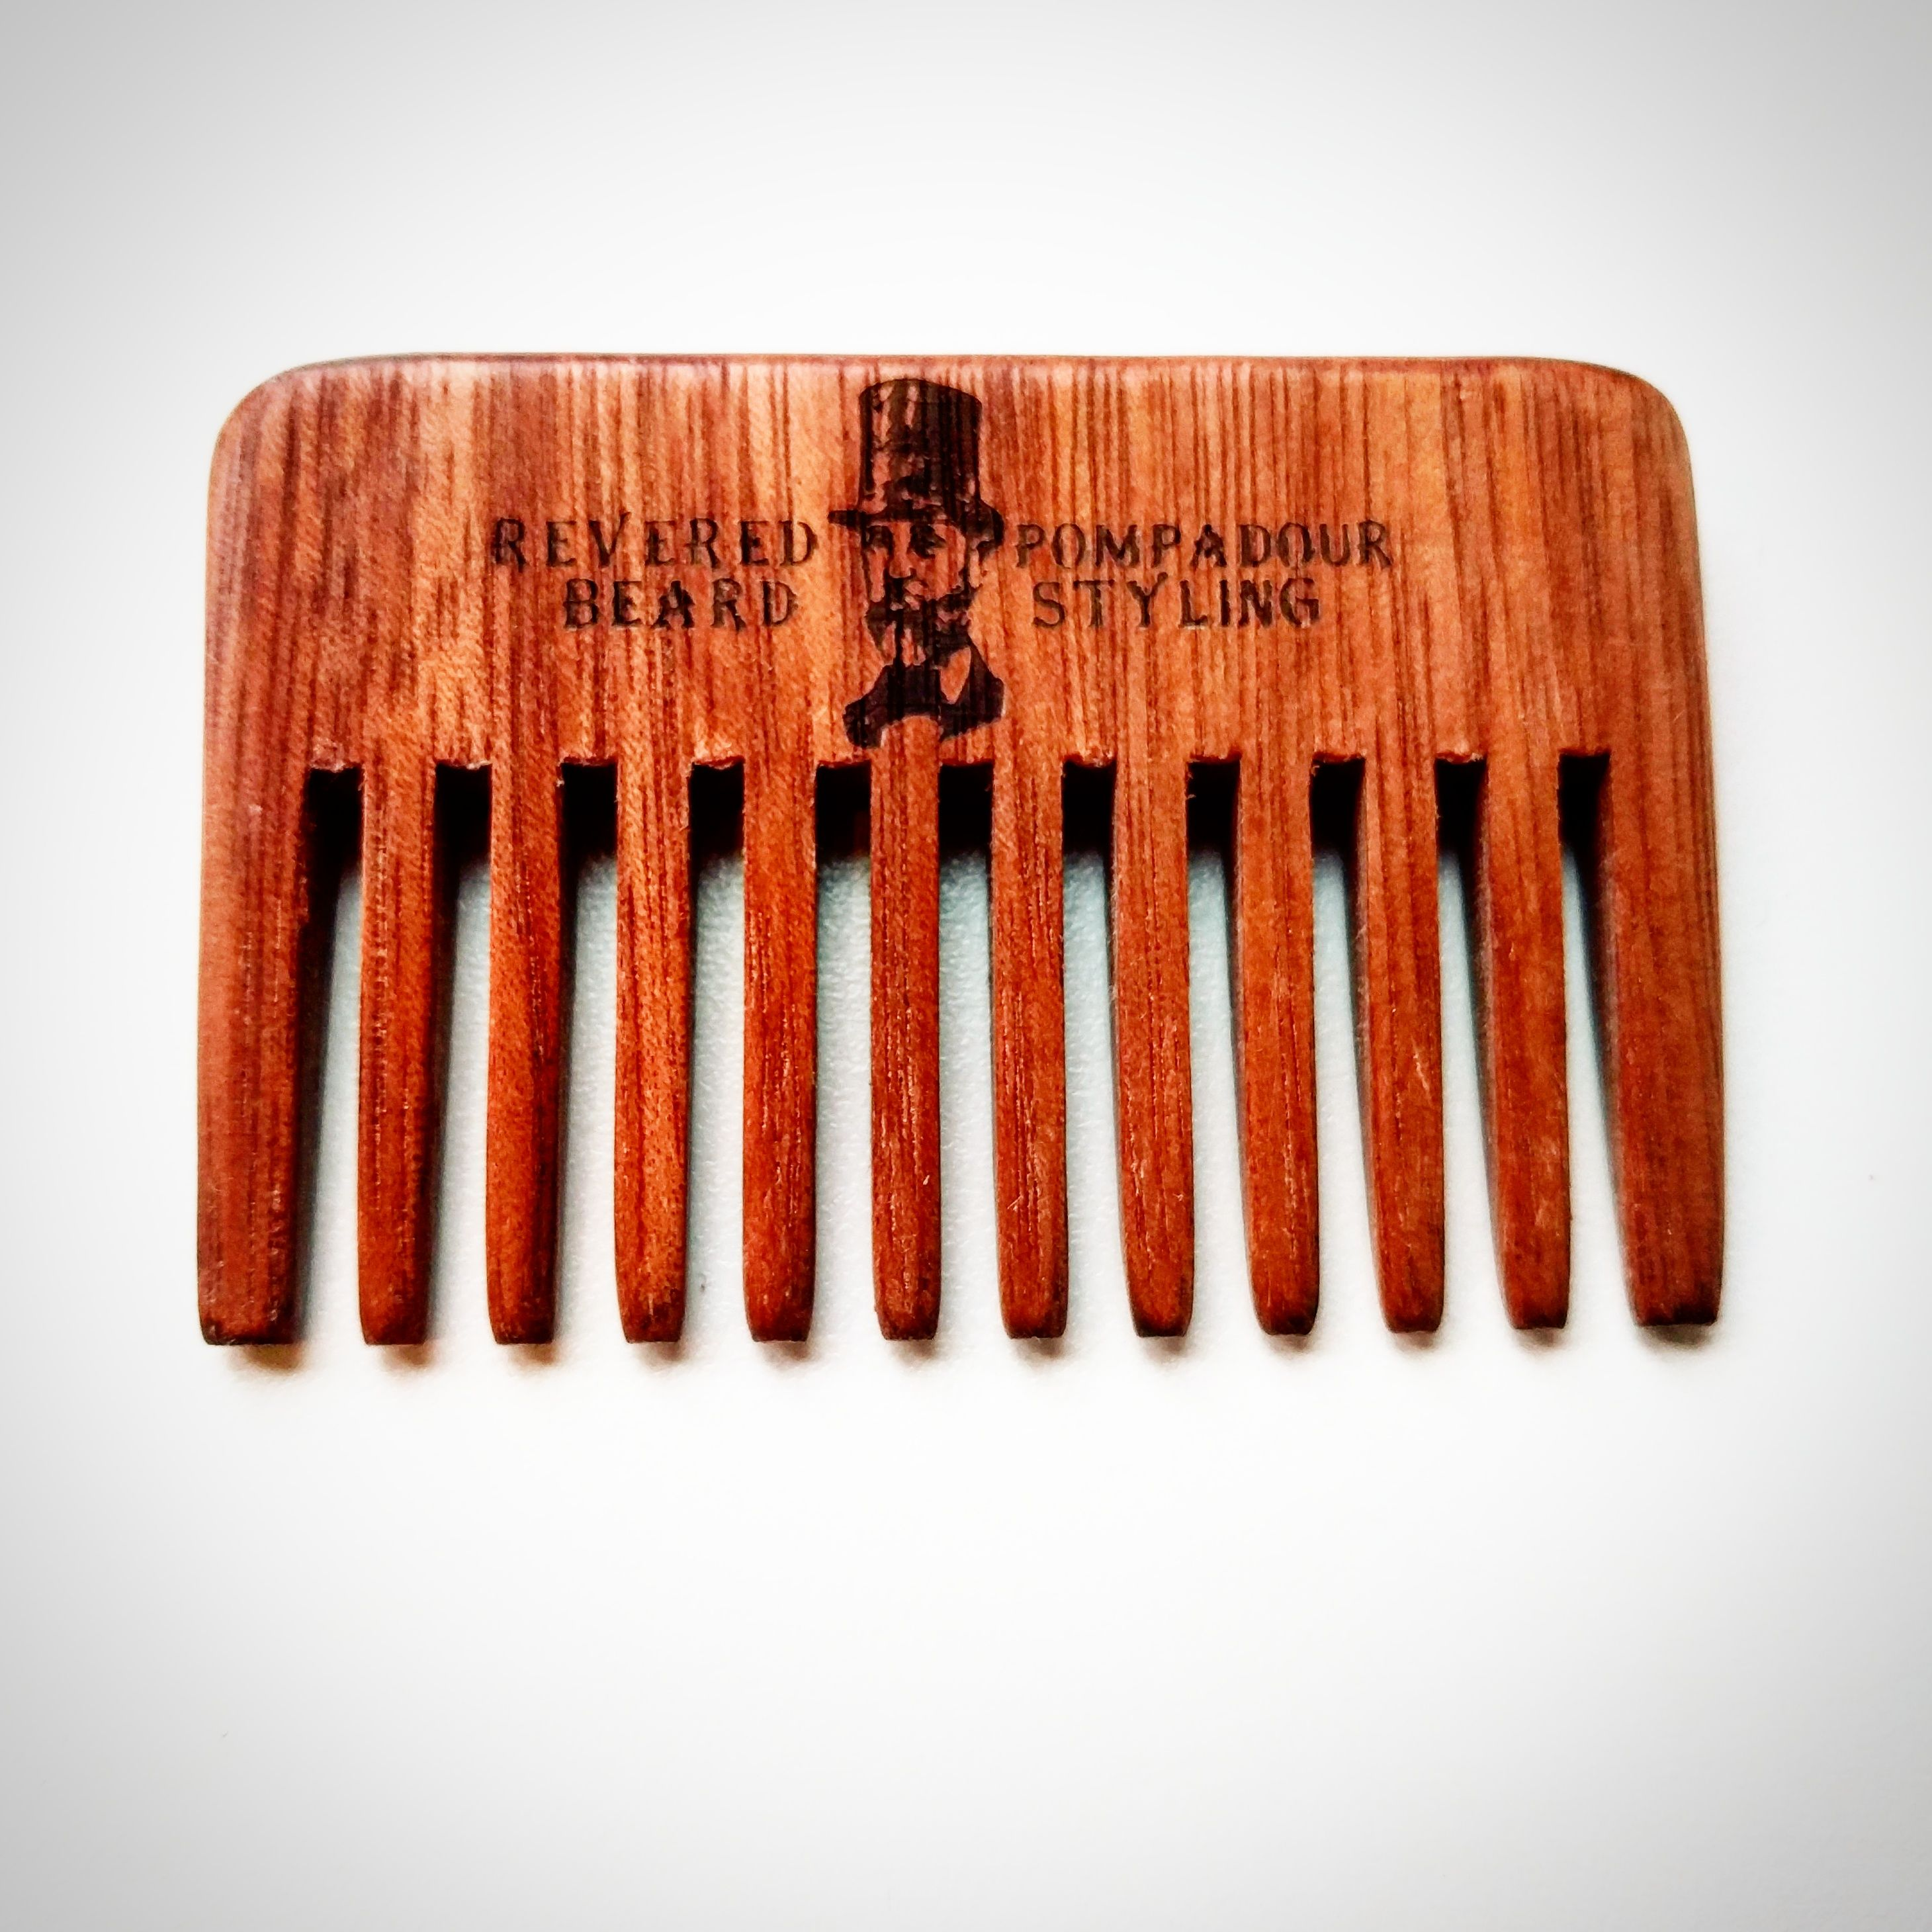 Pompadour Styling and Streaking comb by The Revered Beard